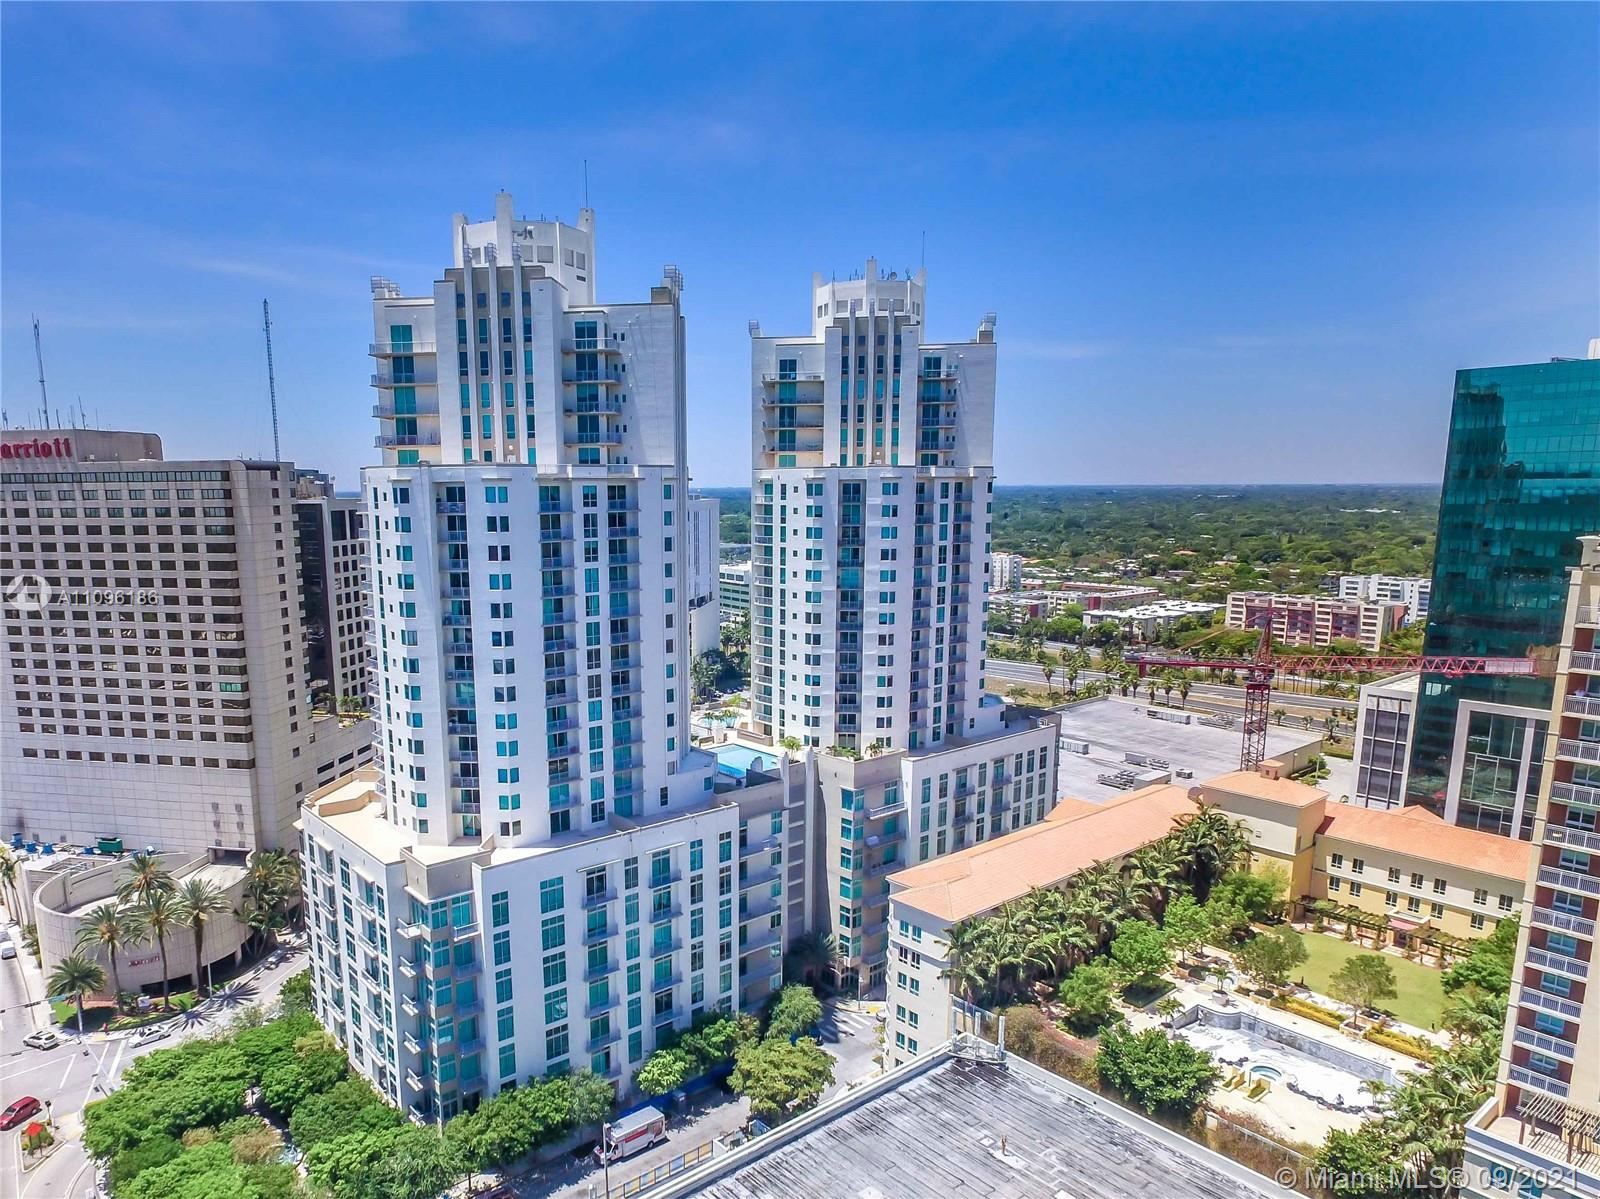 Don't miss the opportunity to own a brand new never lived in penthouse on the 24th floor in Metropolis at Dadeland.  This unit features marble floors, never used stainless steel appliances, wood kitchen cabinets with granite countertops.  13' ceilings with floor to ceiling double sliding doors lead you to a wraparound balcony with spectacular views of Brickell, Key Biscayne and the bay.  With 2 parking spaces, building offers two pools, jacuzzi, sauna, club room, fitness center, 24 hour concierge and valet service.  Walk to Dadeland Mall, metro station and all the up-and-coming restaurants.